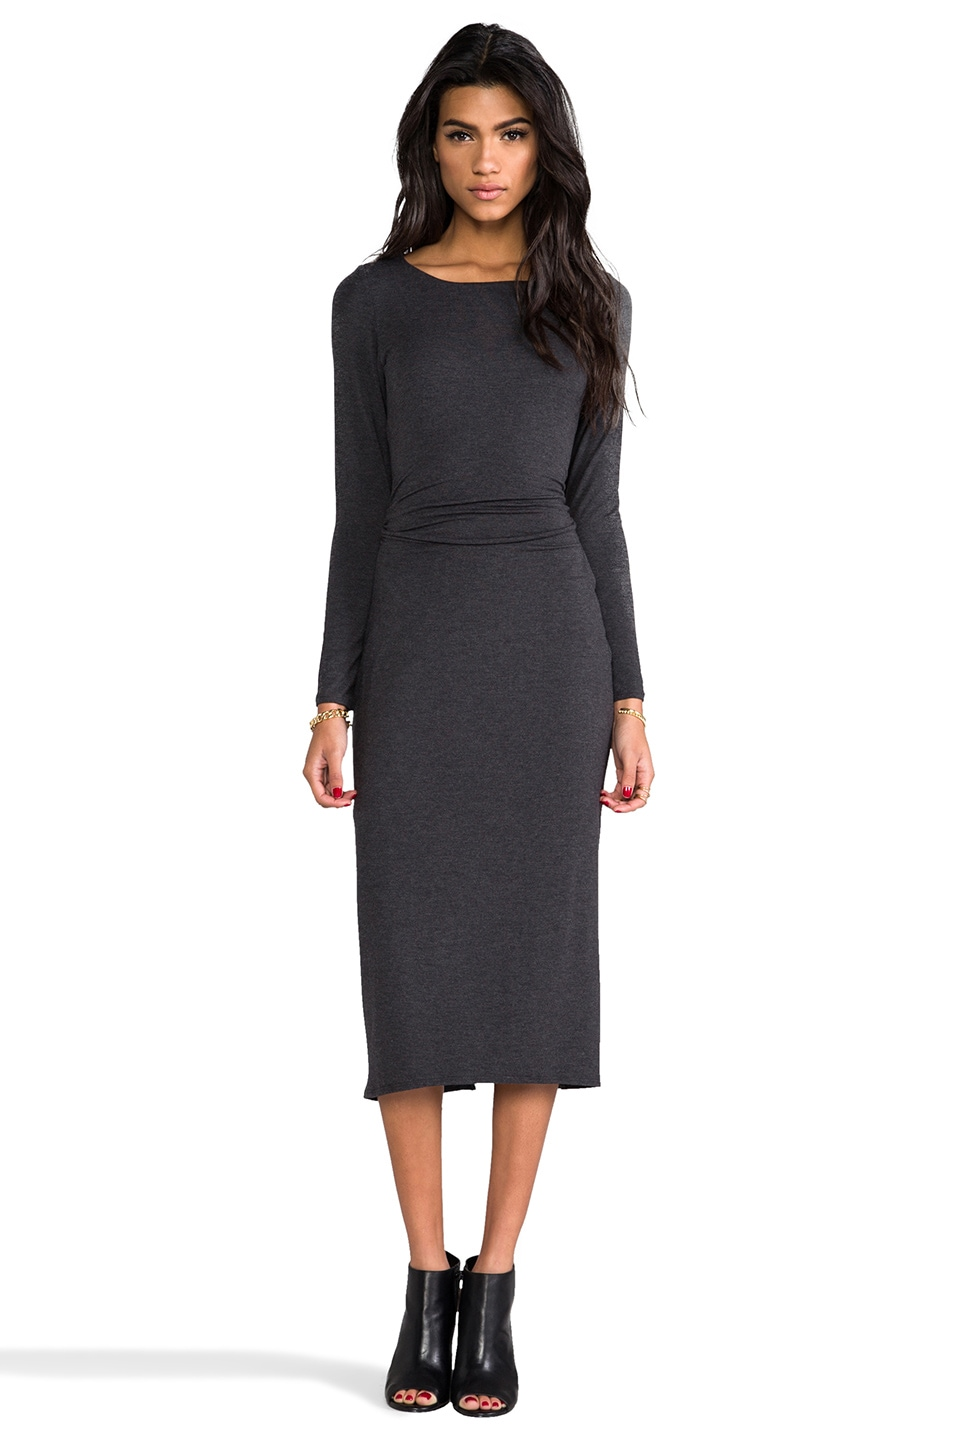 Heather Open Back Midi Dress in Heather Black